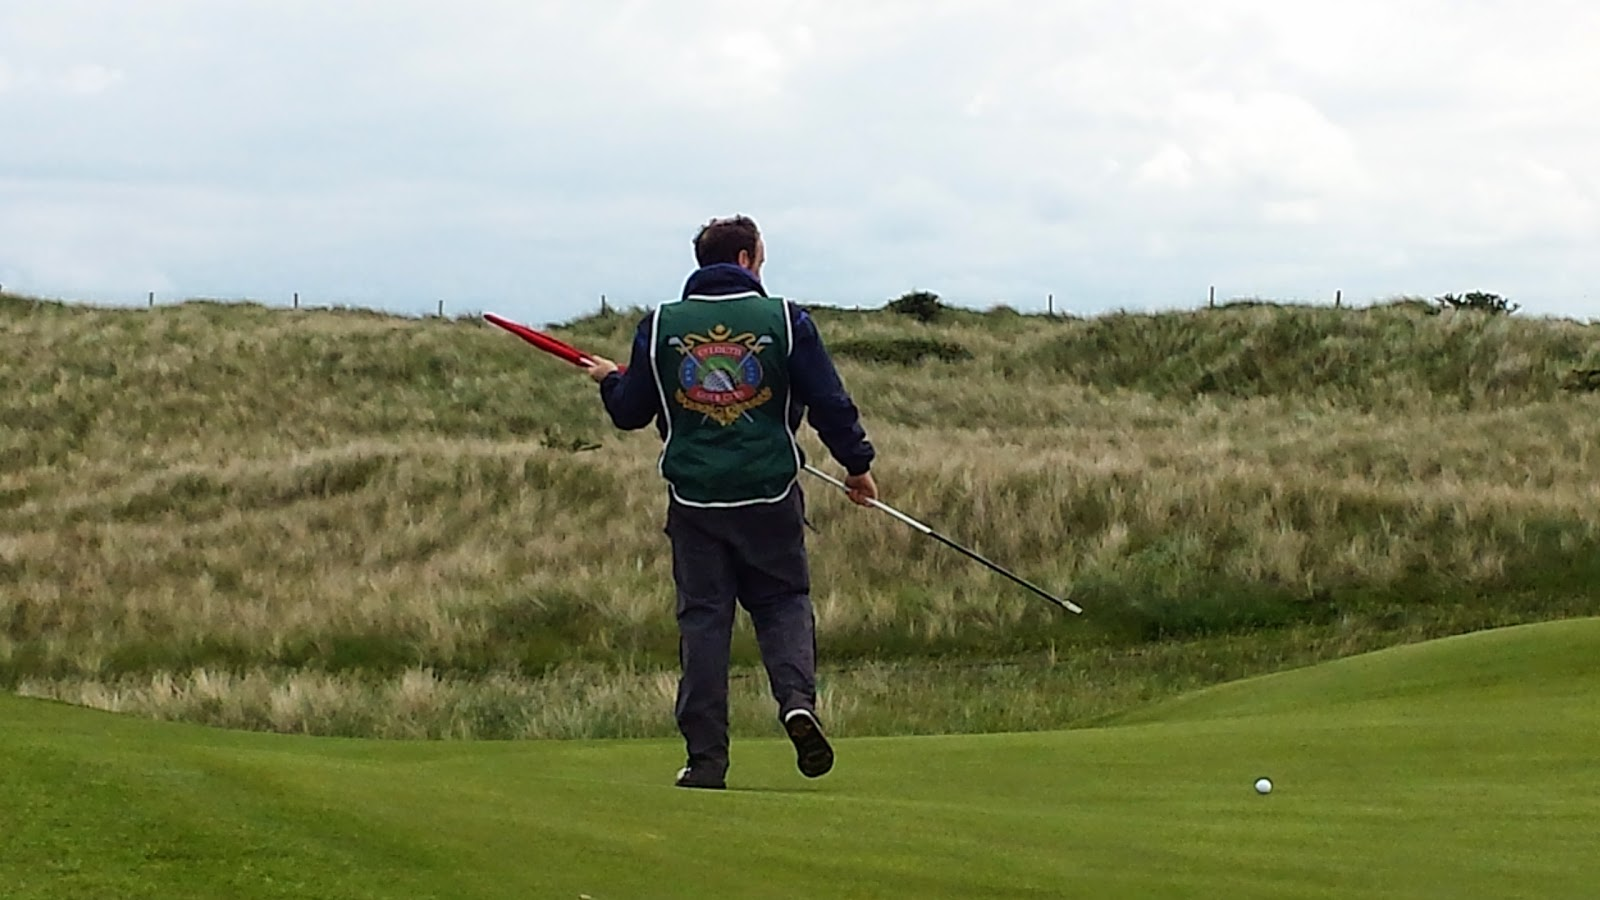 Ireland Golf Courses - To caddie or not to caddie?